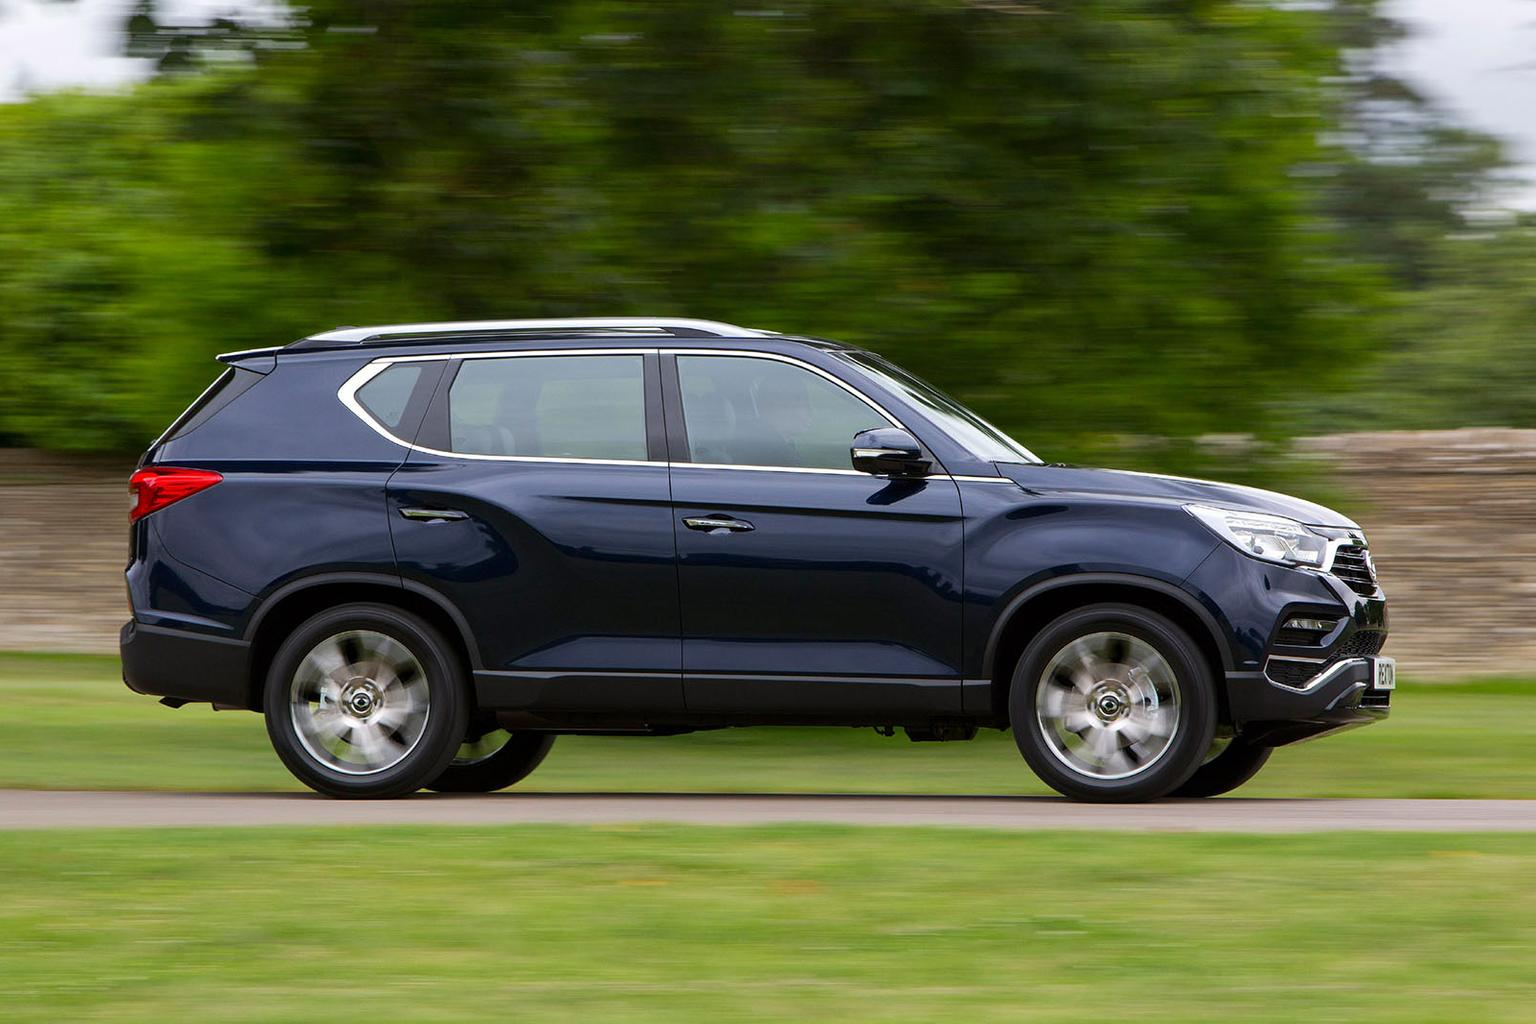 2017 Ssangyong Rexton review - price, specs and release date